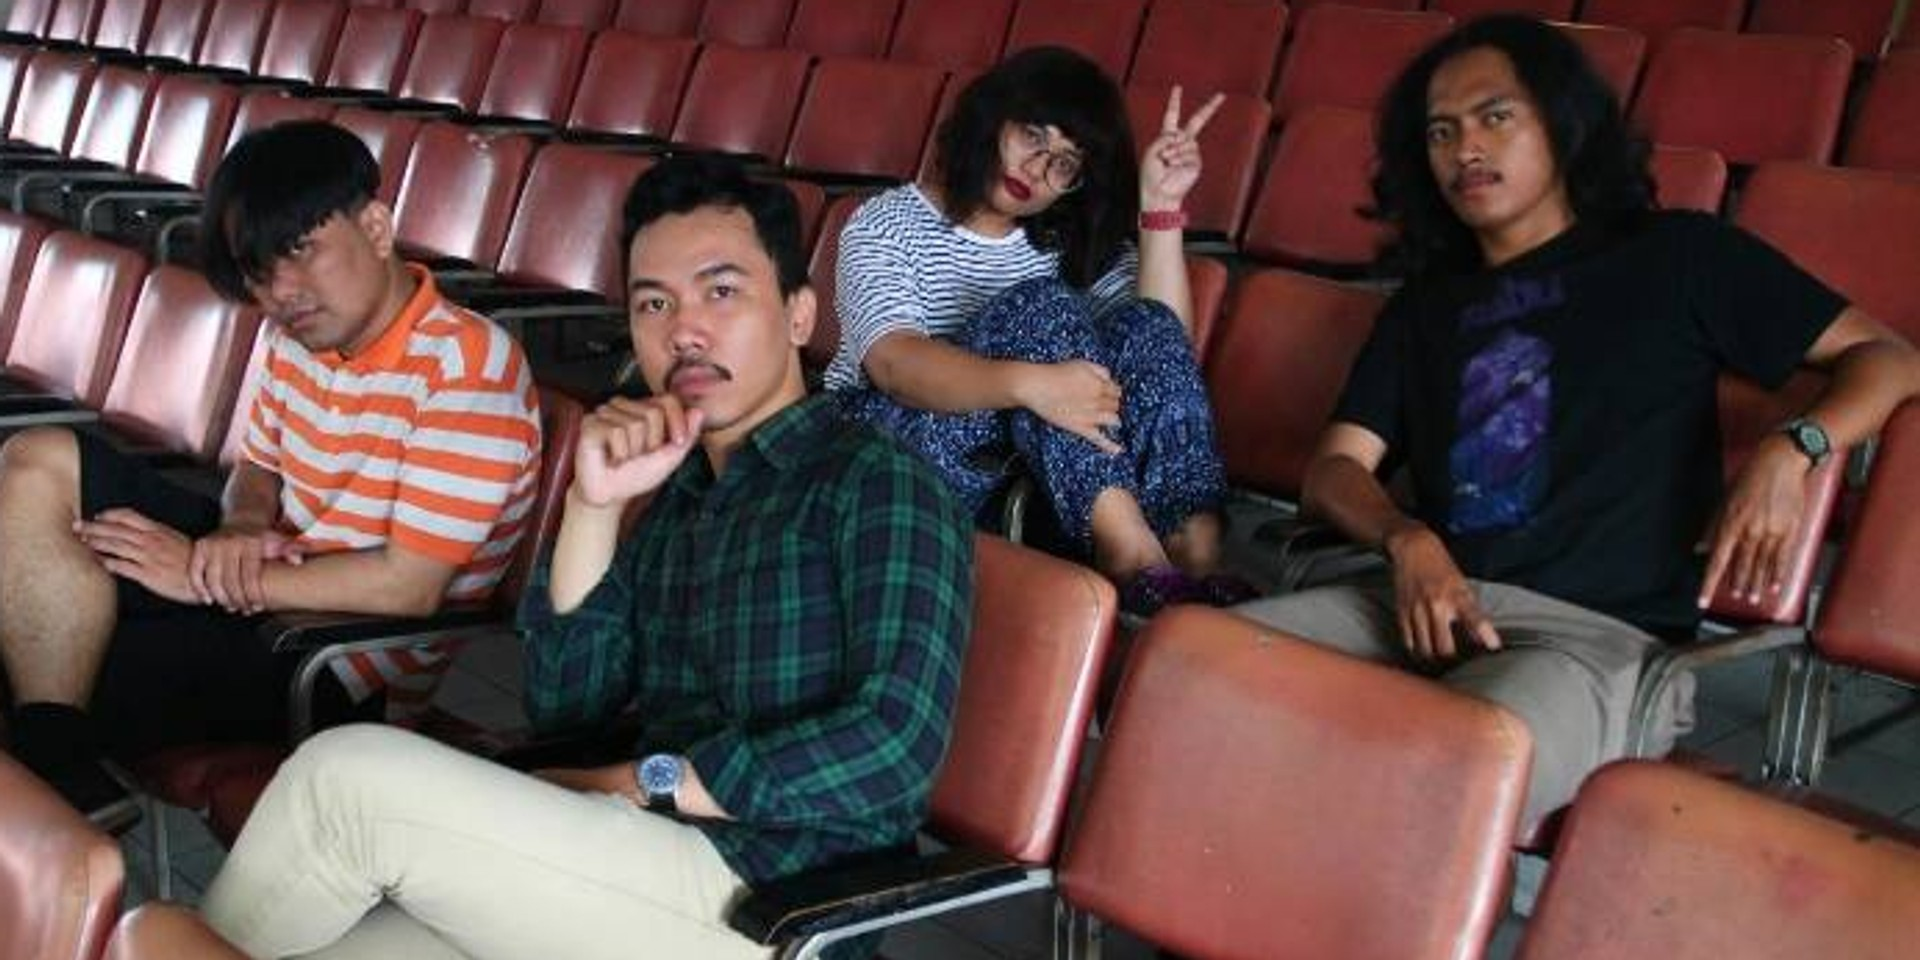 Yogyakarta dream-pop act Seahorse release new music video 'Apprentice' — watch